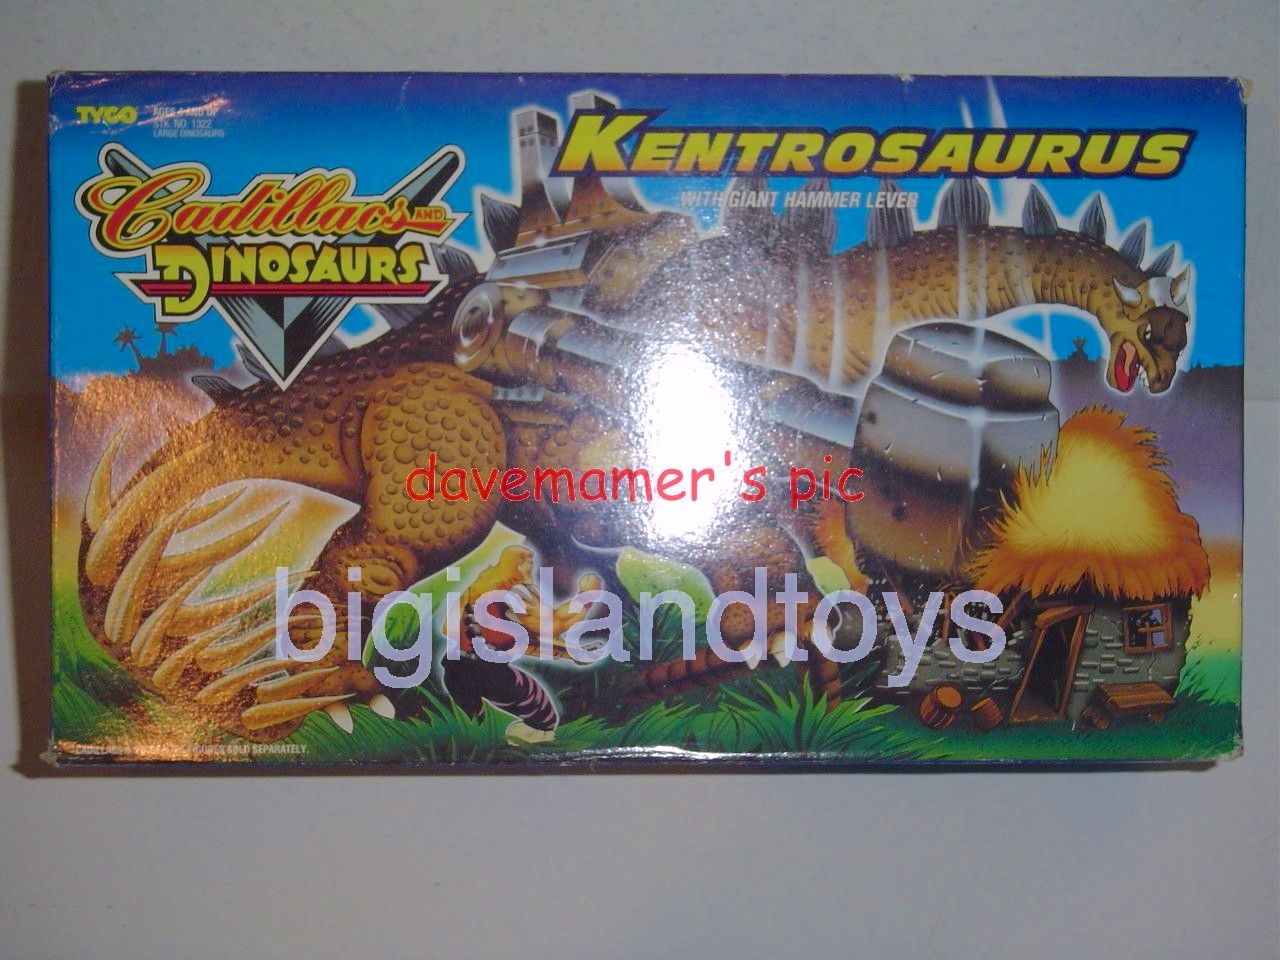 Cadillacs and Dinosaurs    KENTROSAURUS with Giant Hammer Lever